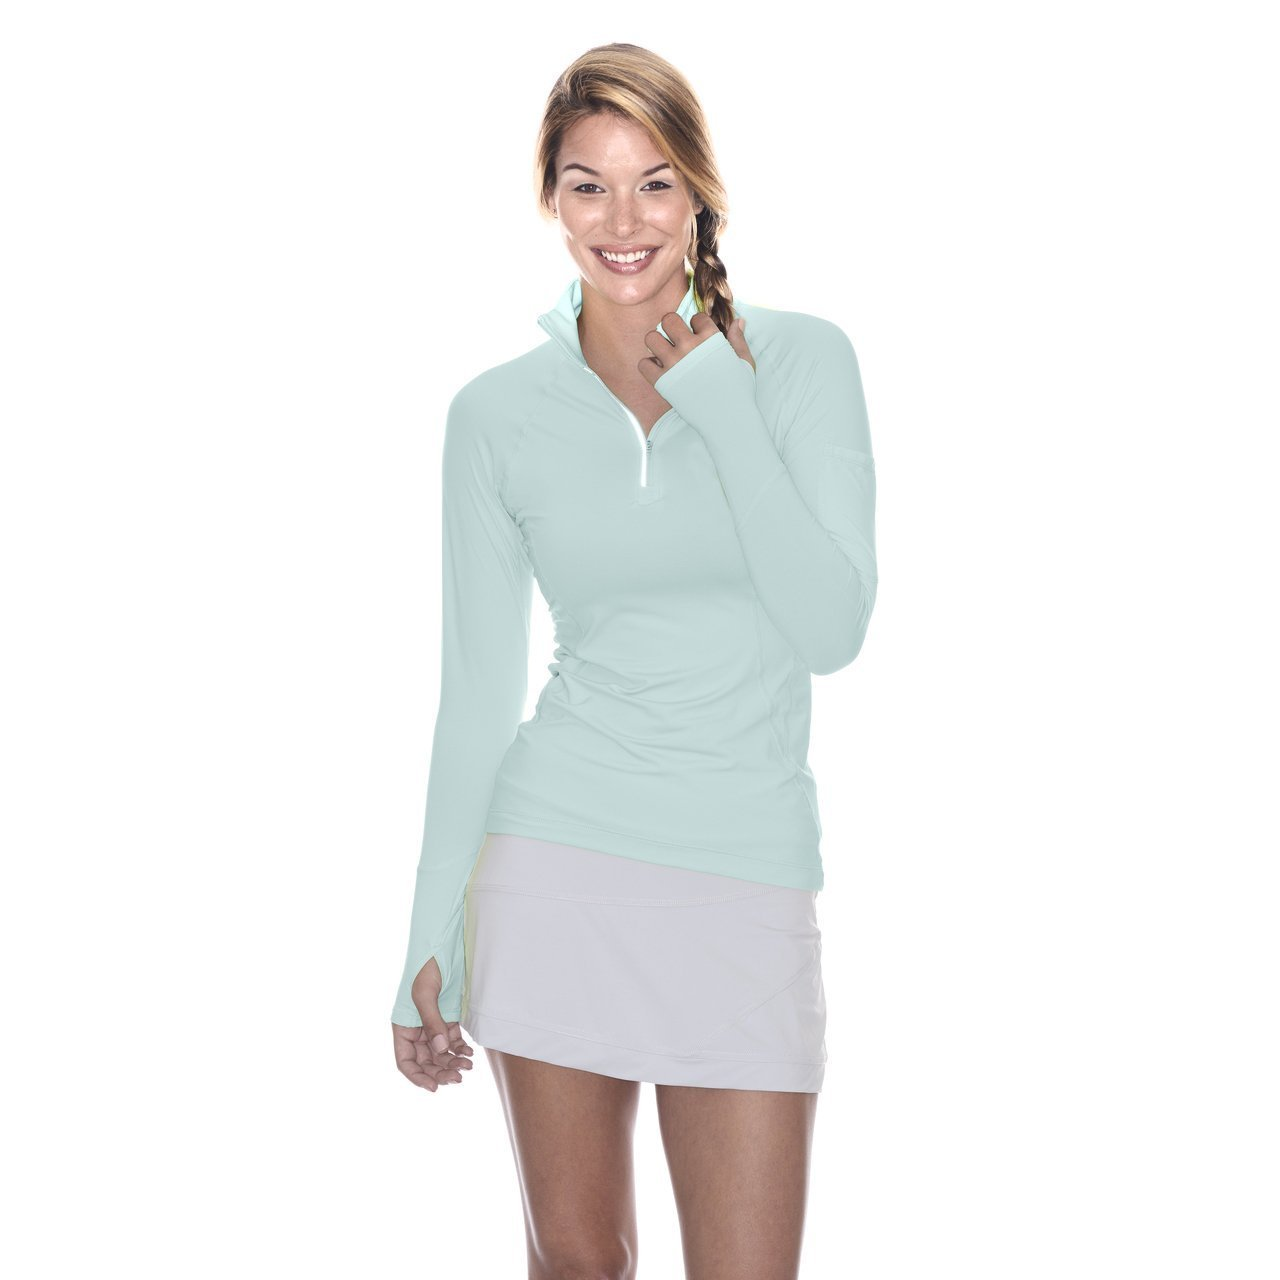 BloqUV Women's Mock Zip Top Mint Size X-Small by BloqUV (Image #1)